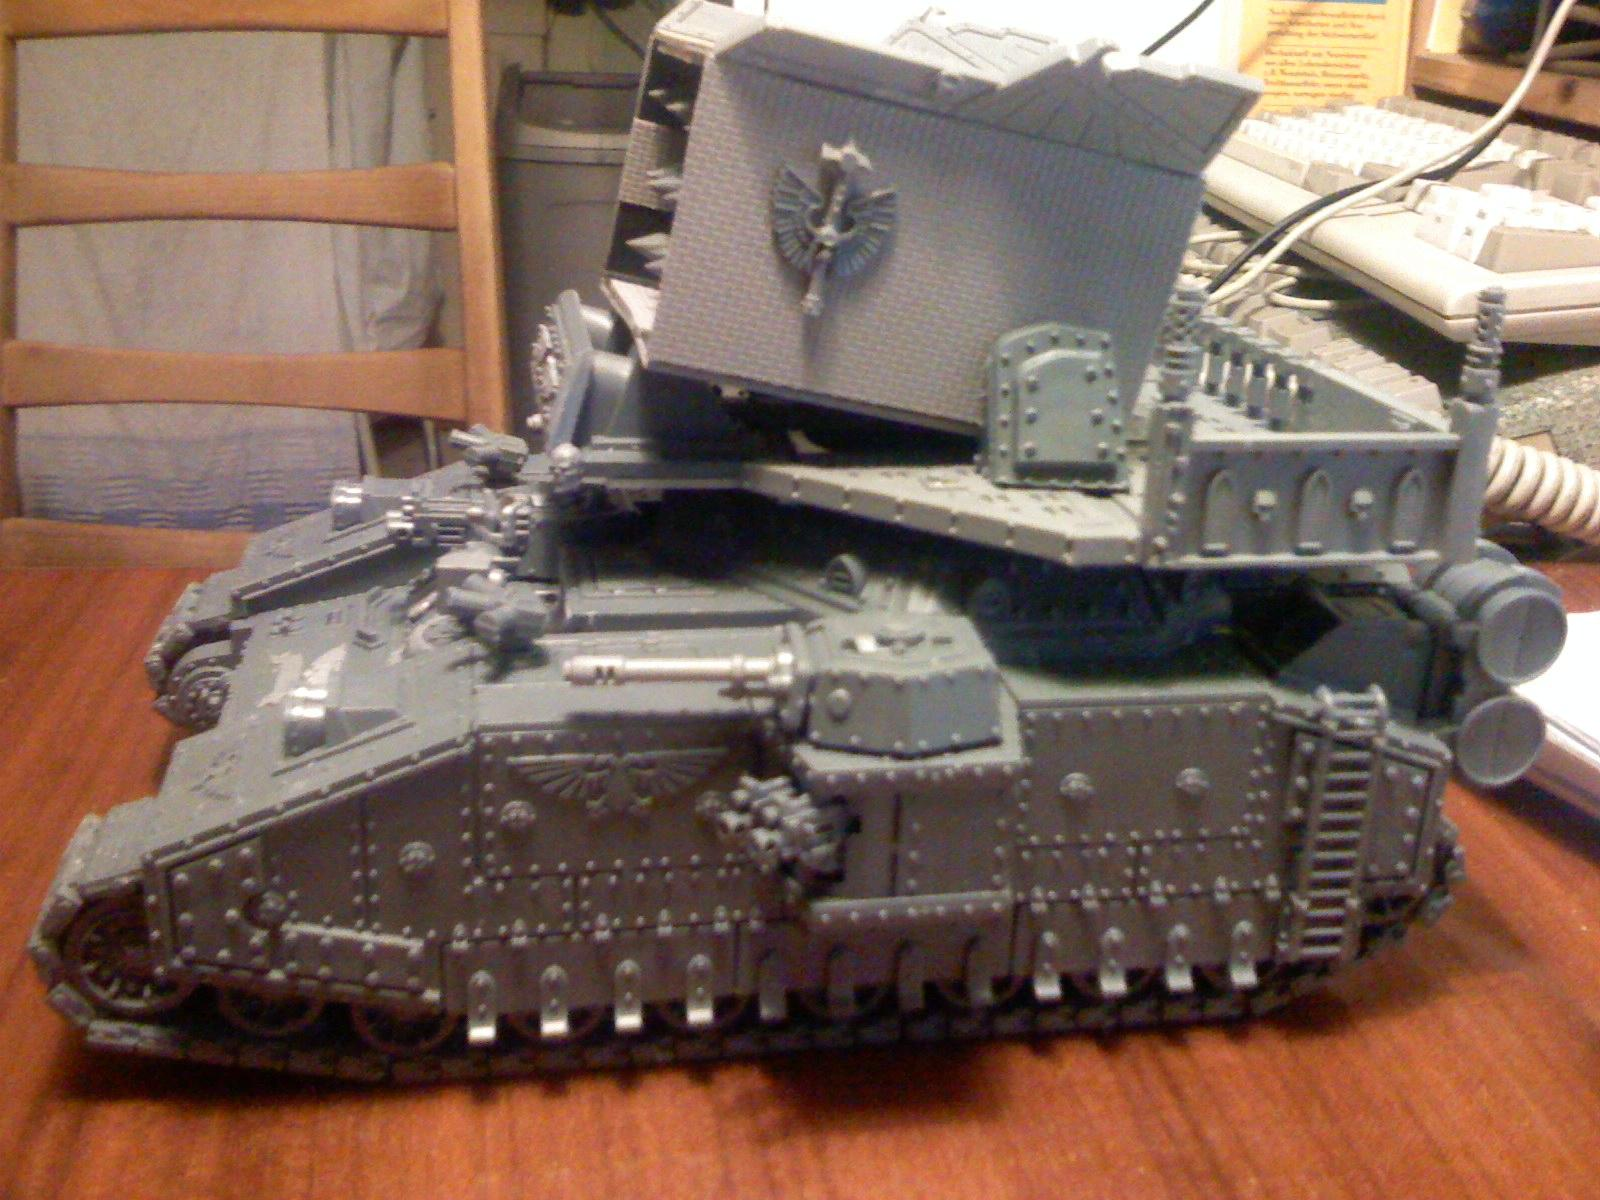 Apocalypse, Baneblade, Super-heavy, Warhammer 40,000, Work In Progress